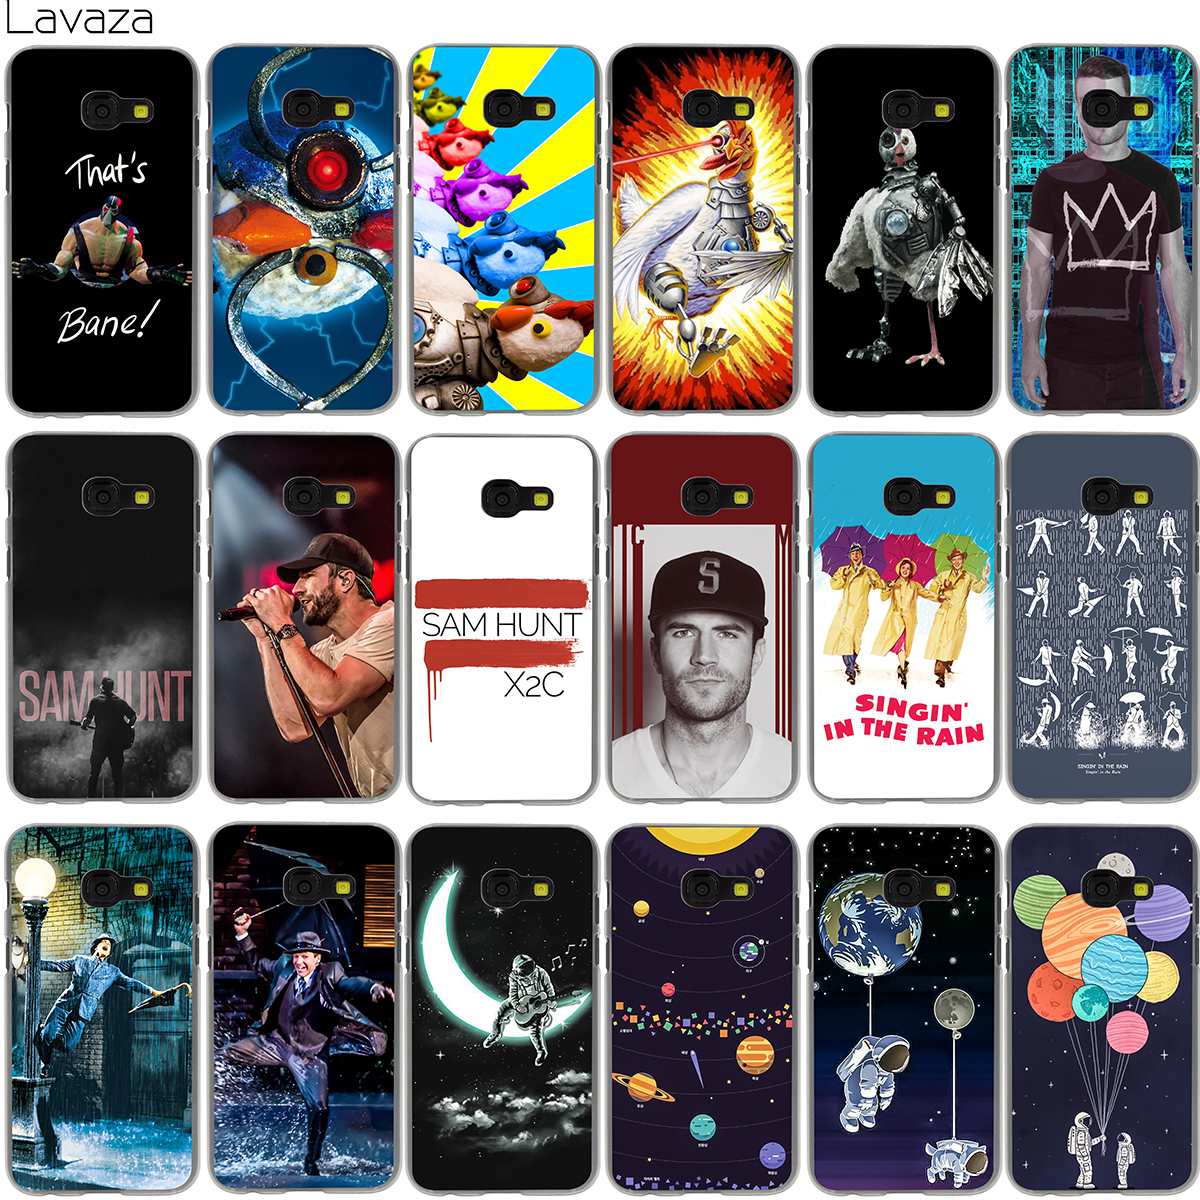 Lavaza Robot Chicken Sam Hunt Singin In The Rain Heart Couples Case for Samsung Galaxy Note 8 A3 A5 A8 J3 J5 J7 2016 2017 2018 ...